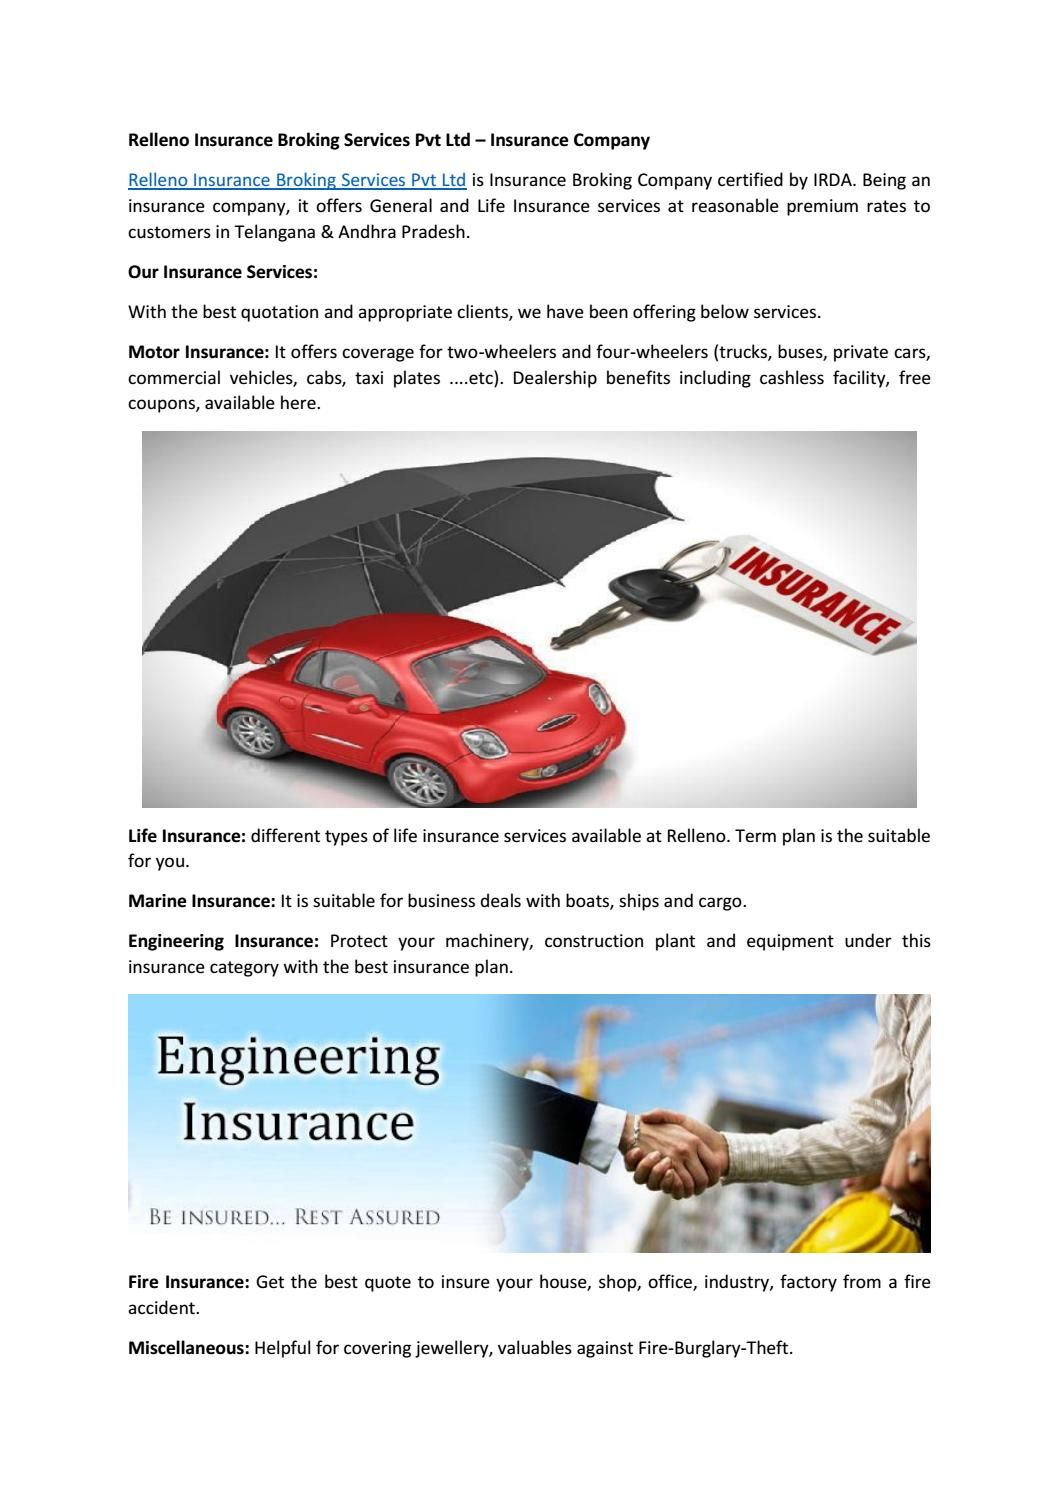 Relleno Insurance Broking Services Pvt Ltd Insurance Company